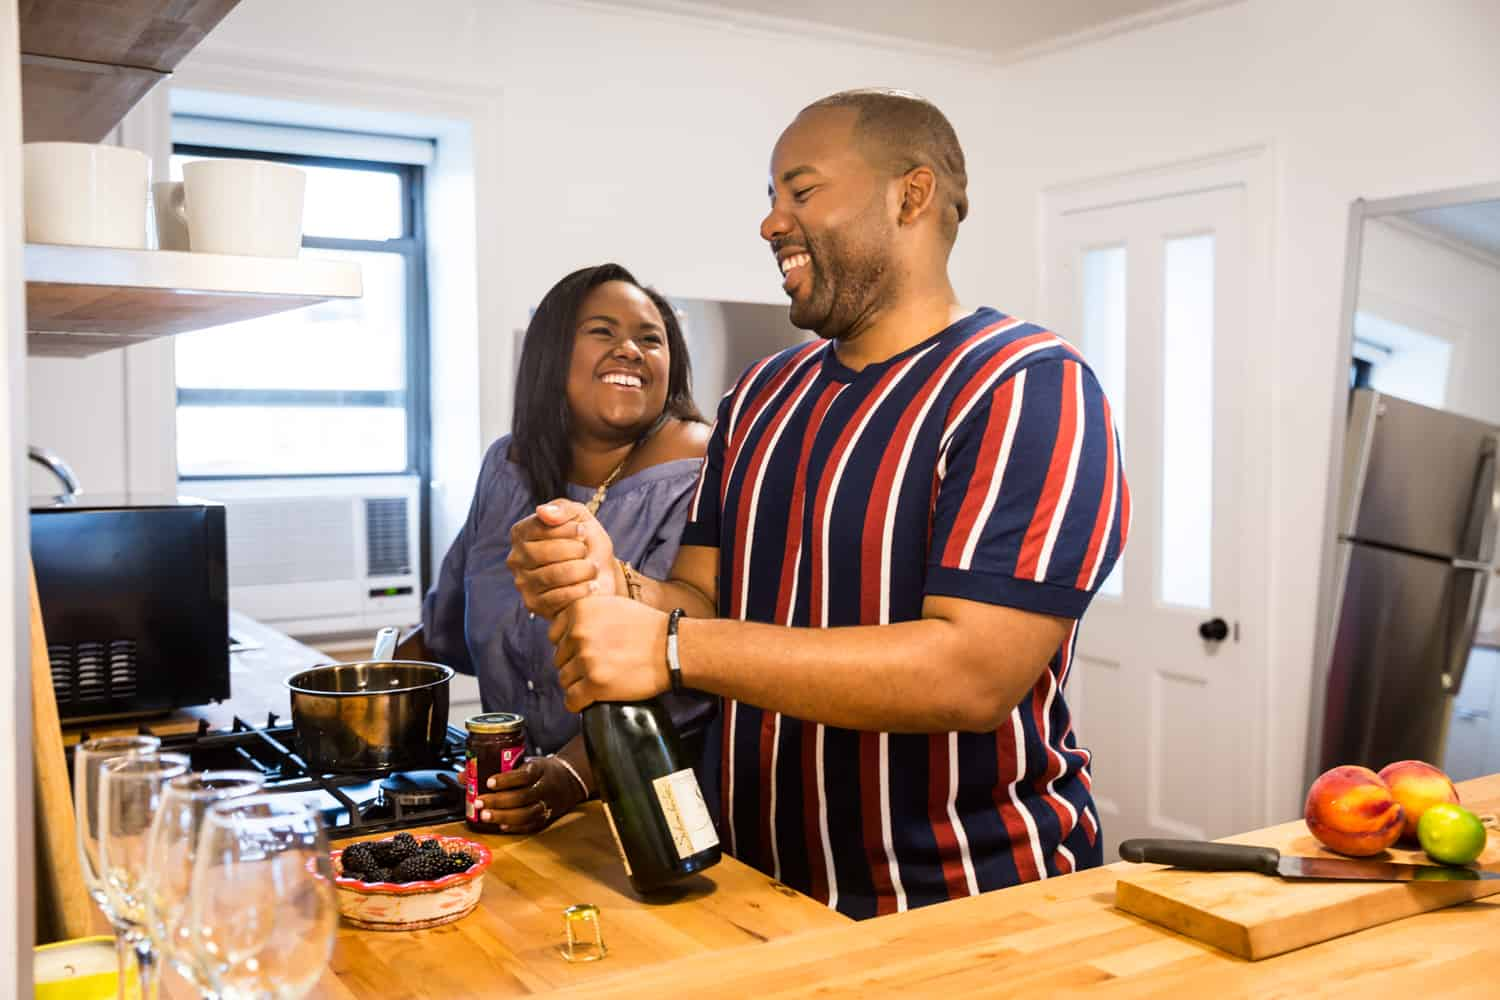 Man opening bottle of champagne in kitchen with woman for an article on creative engagement photo shoot ideas